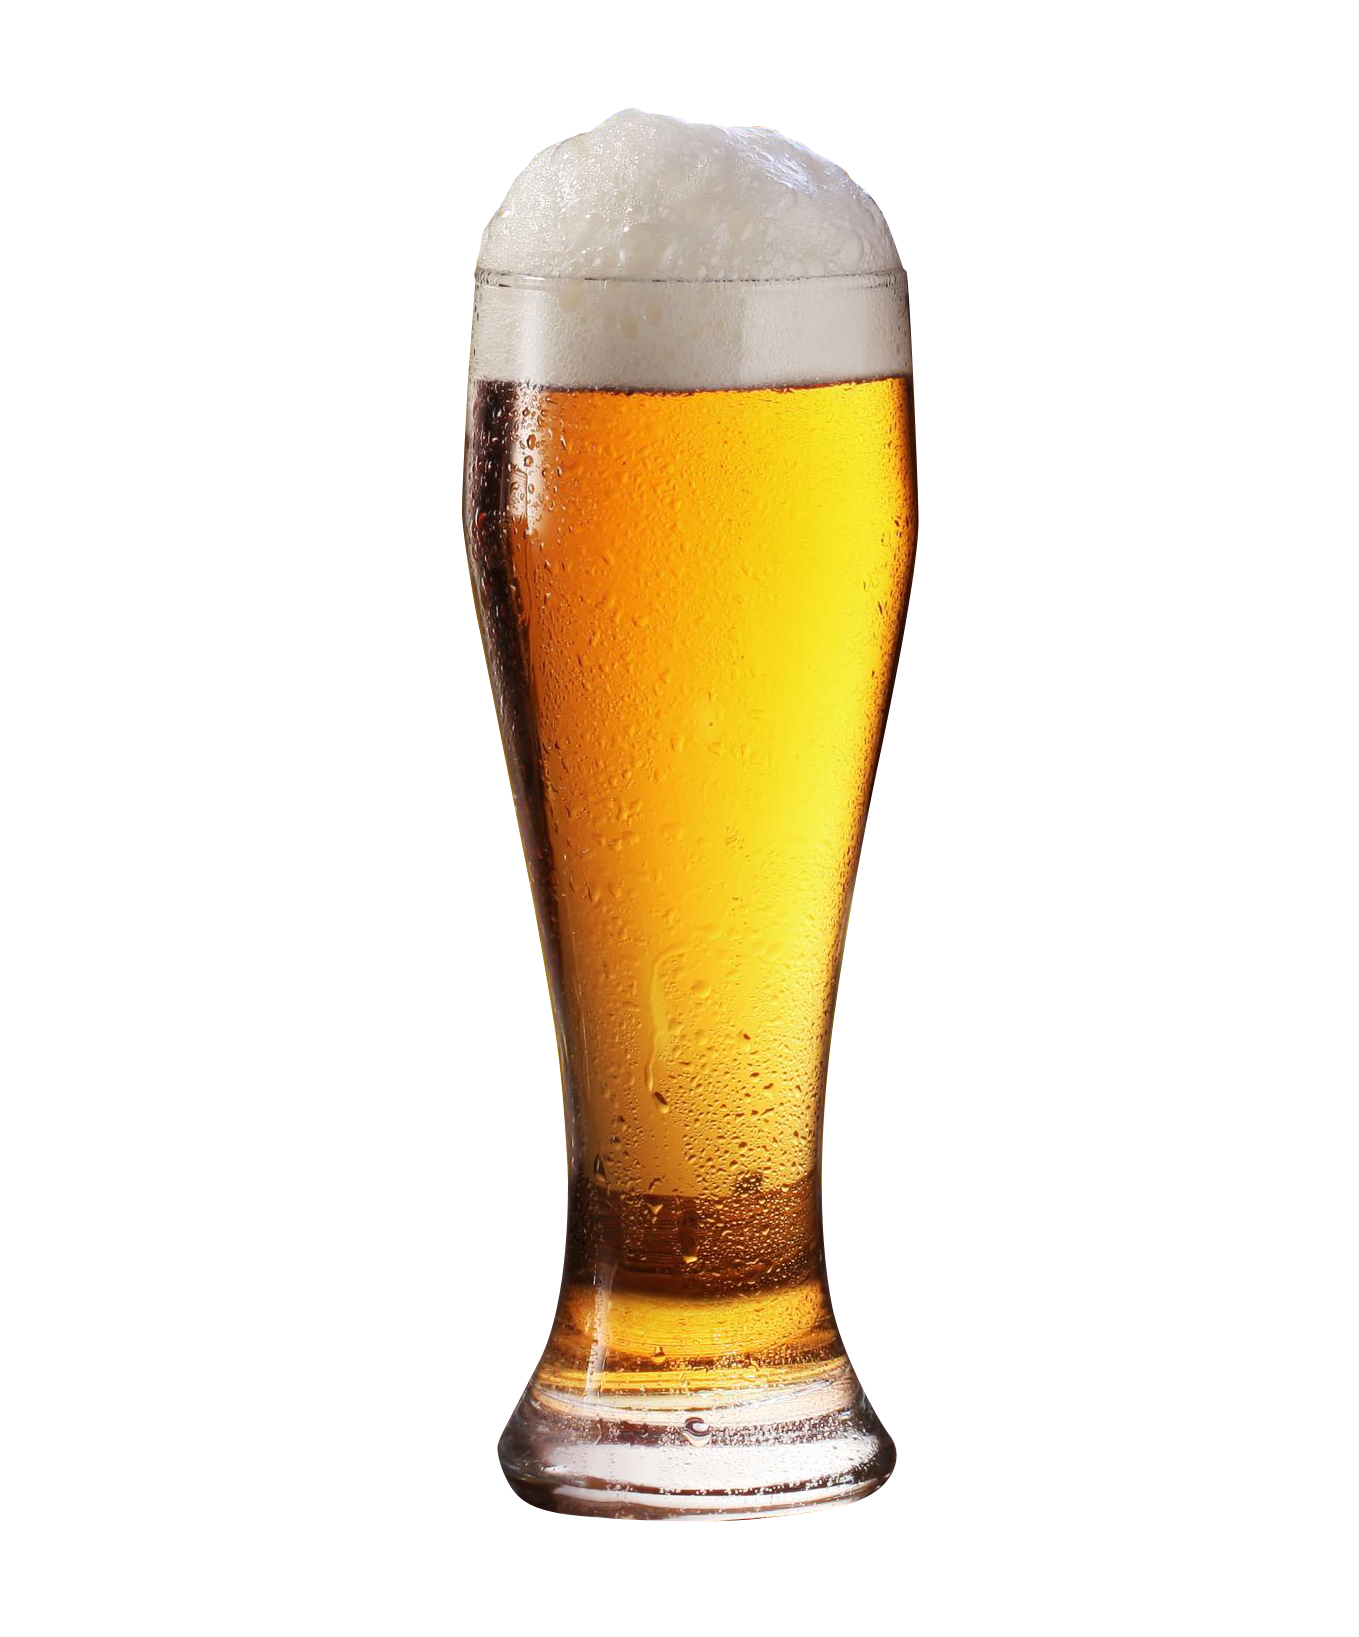 Beer Glass PNG Transparent Image #379.